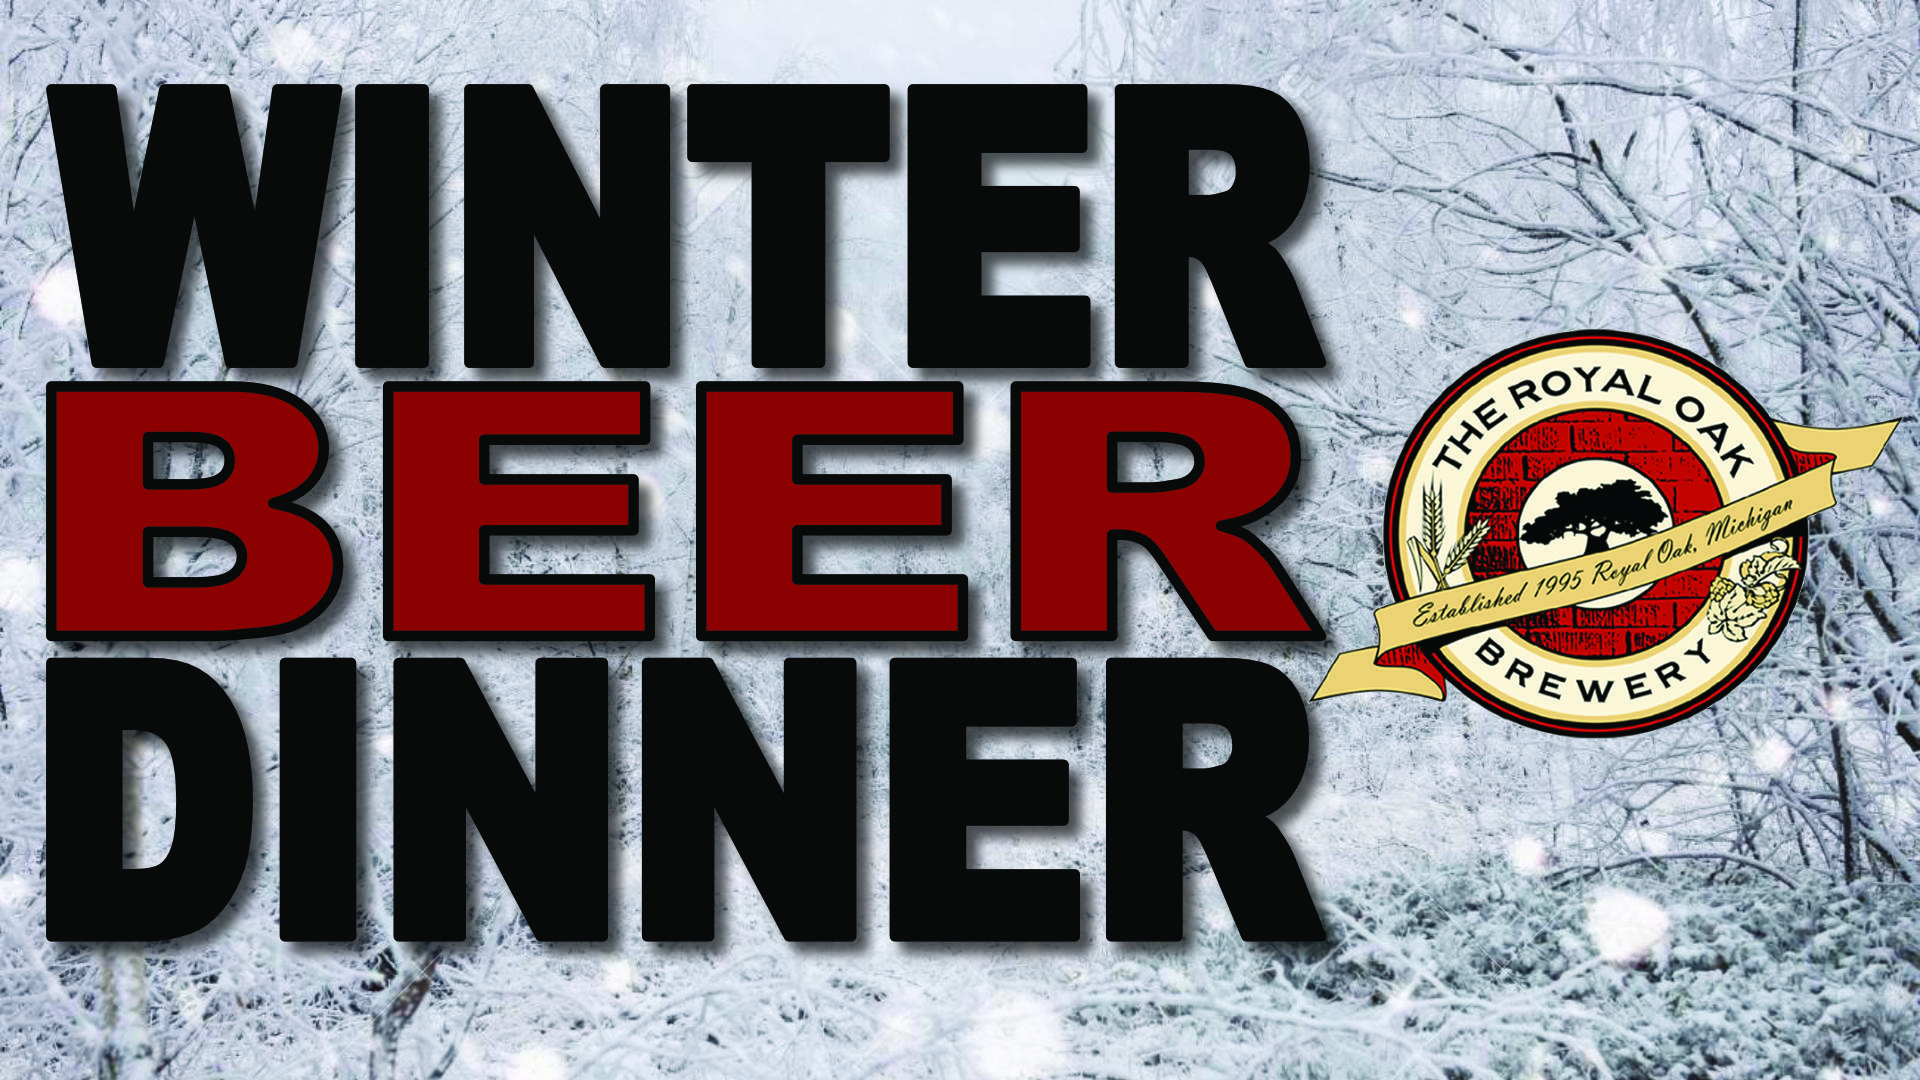 Winter Beer Dinner at the Royal Oak Brewery